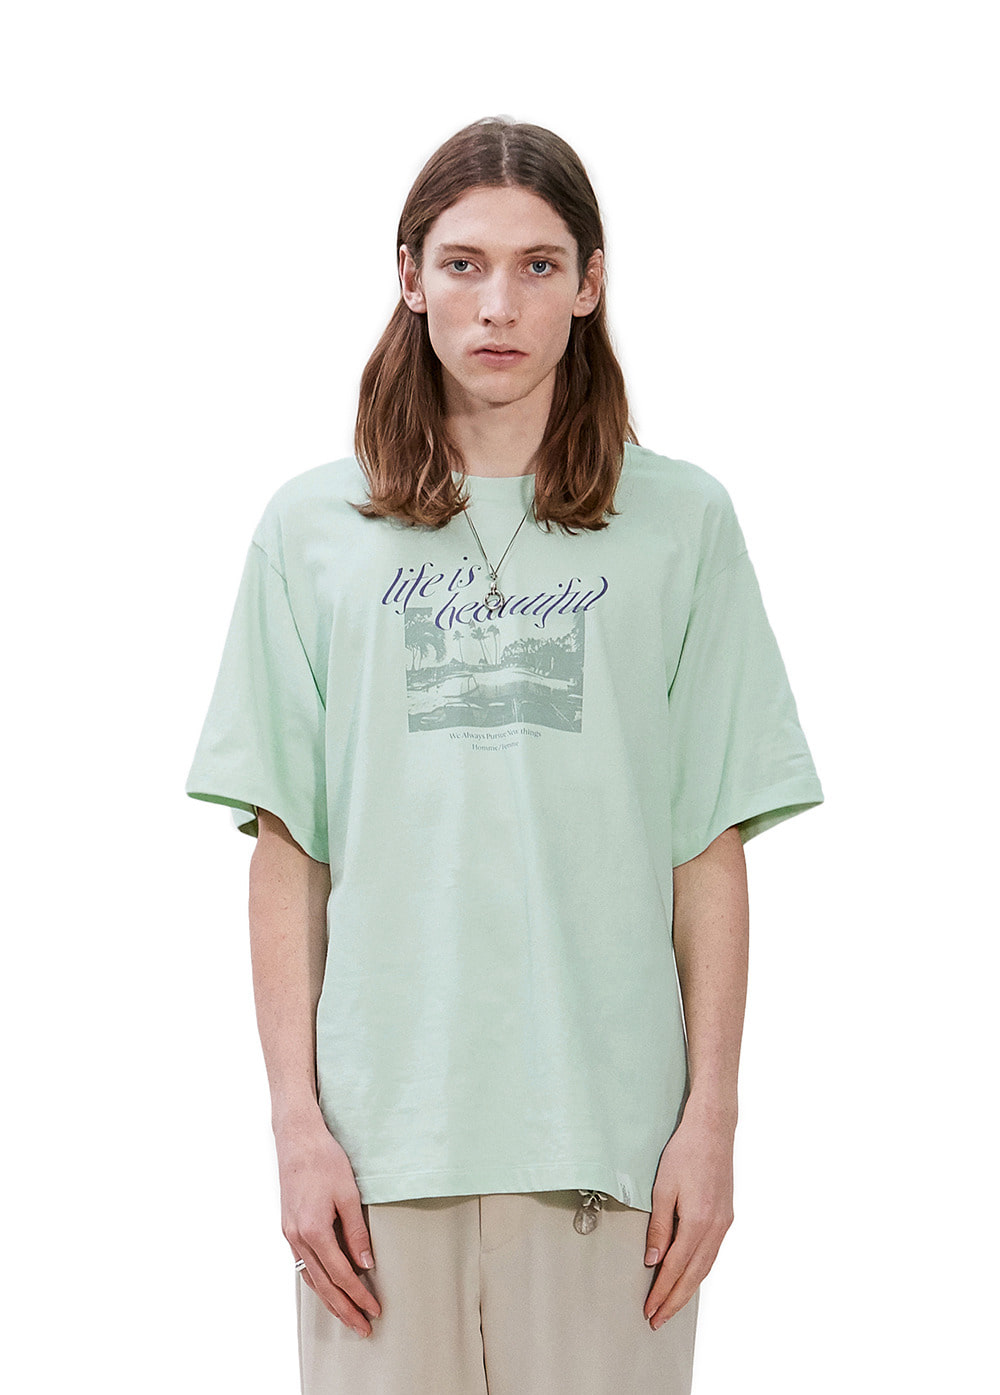 LAPILI BAY GRAPHIC TEE mint